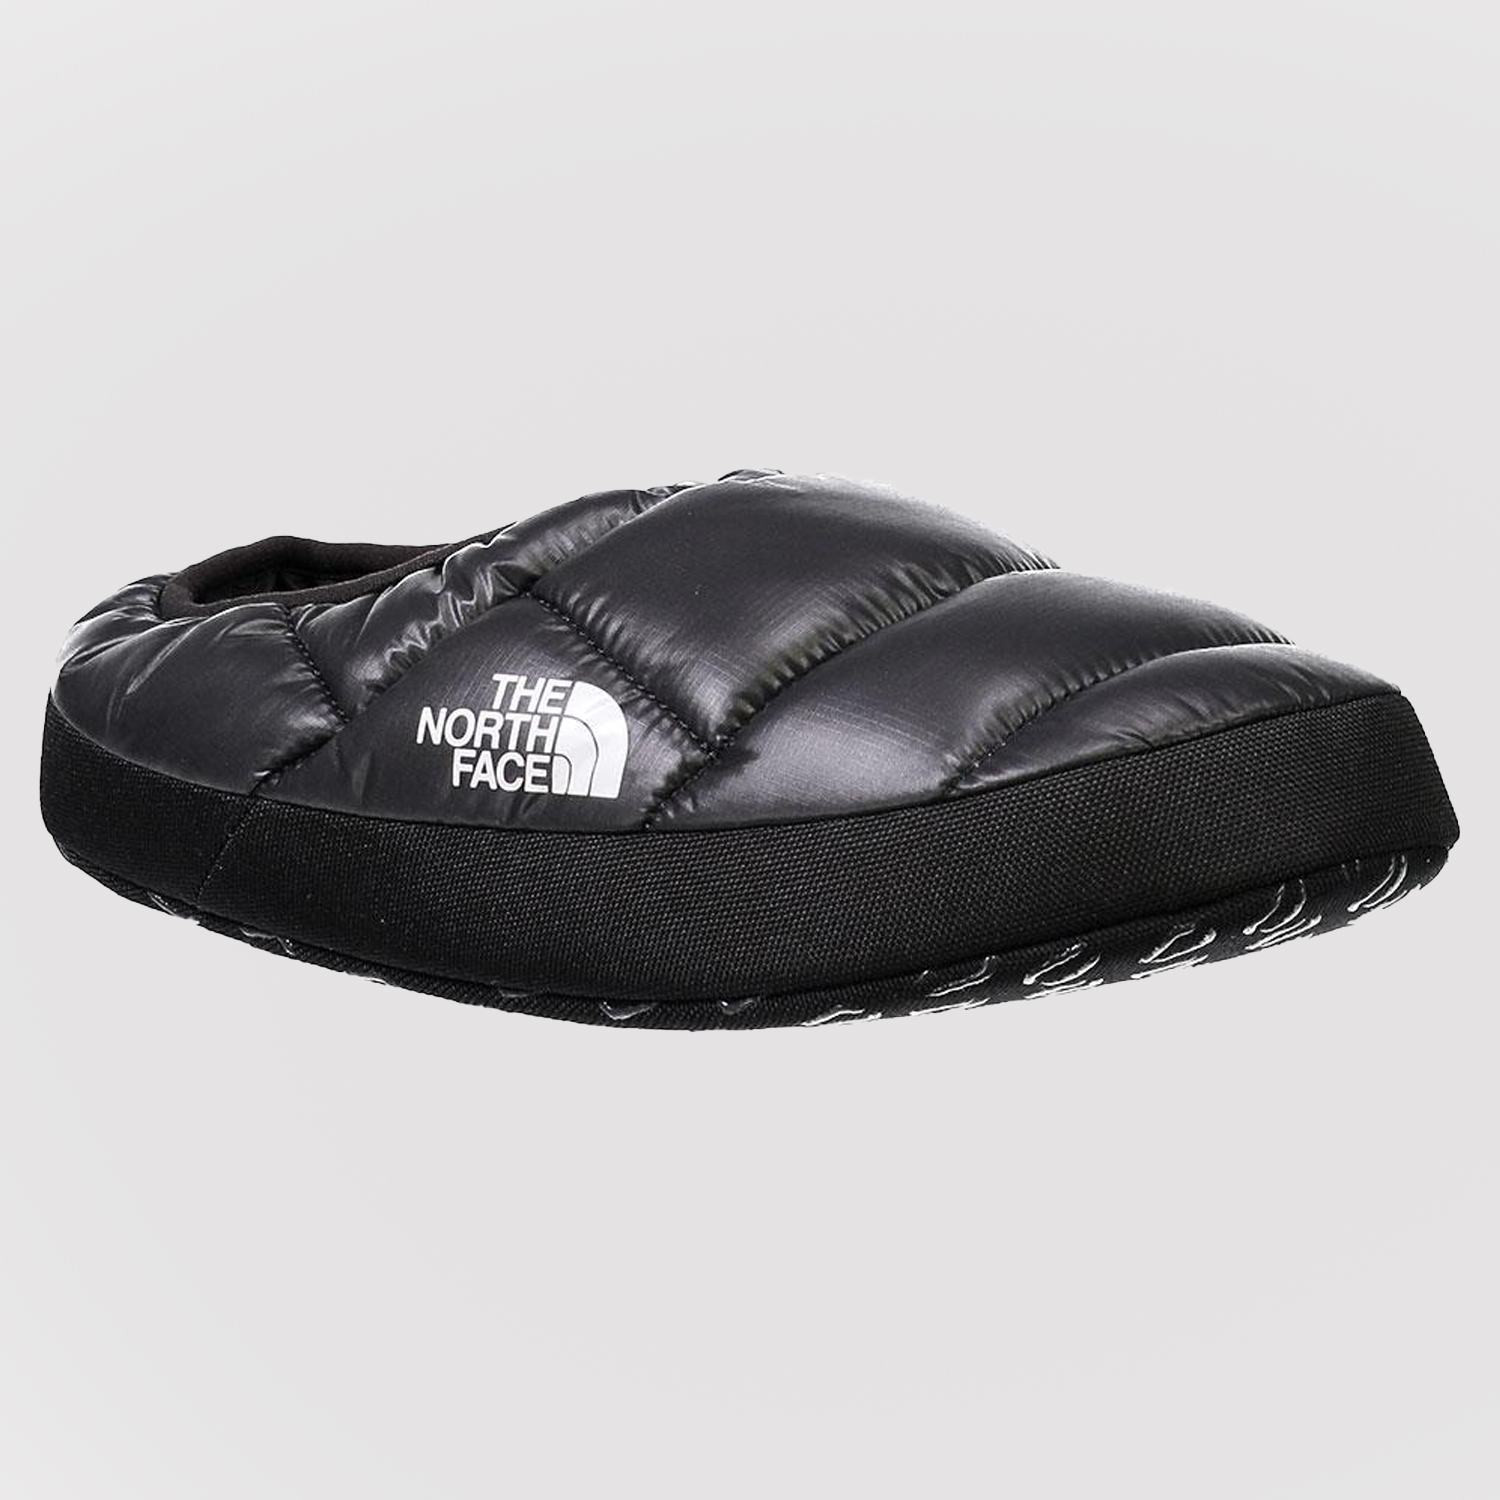 THE NORTH FACE M NSE TENT MULE III (9000036519_23281)